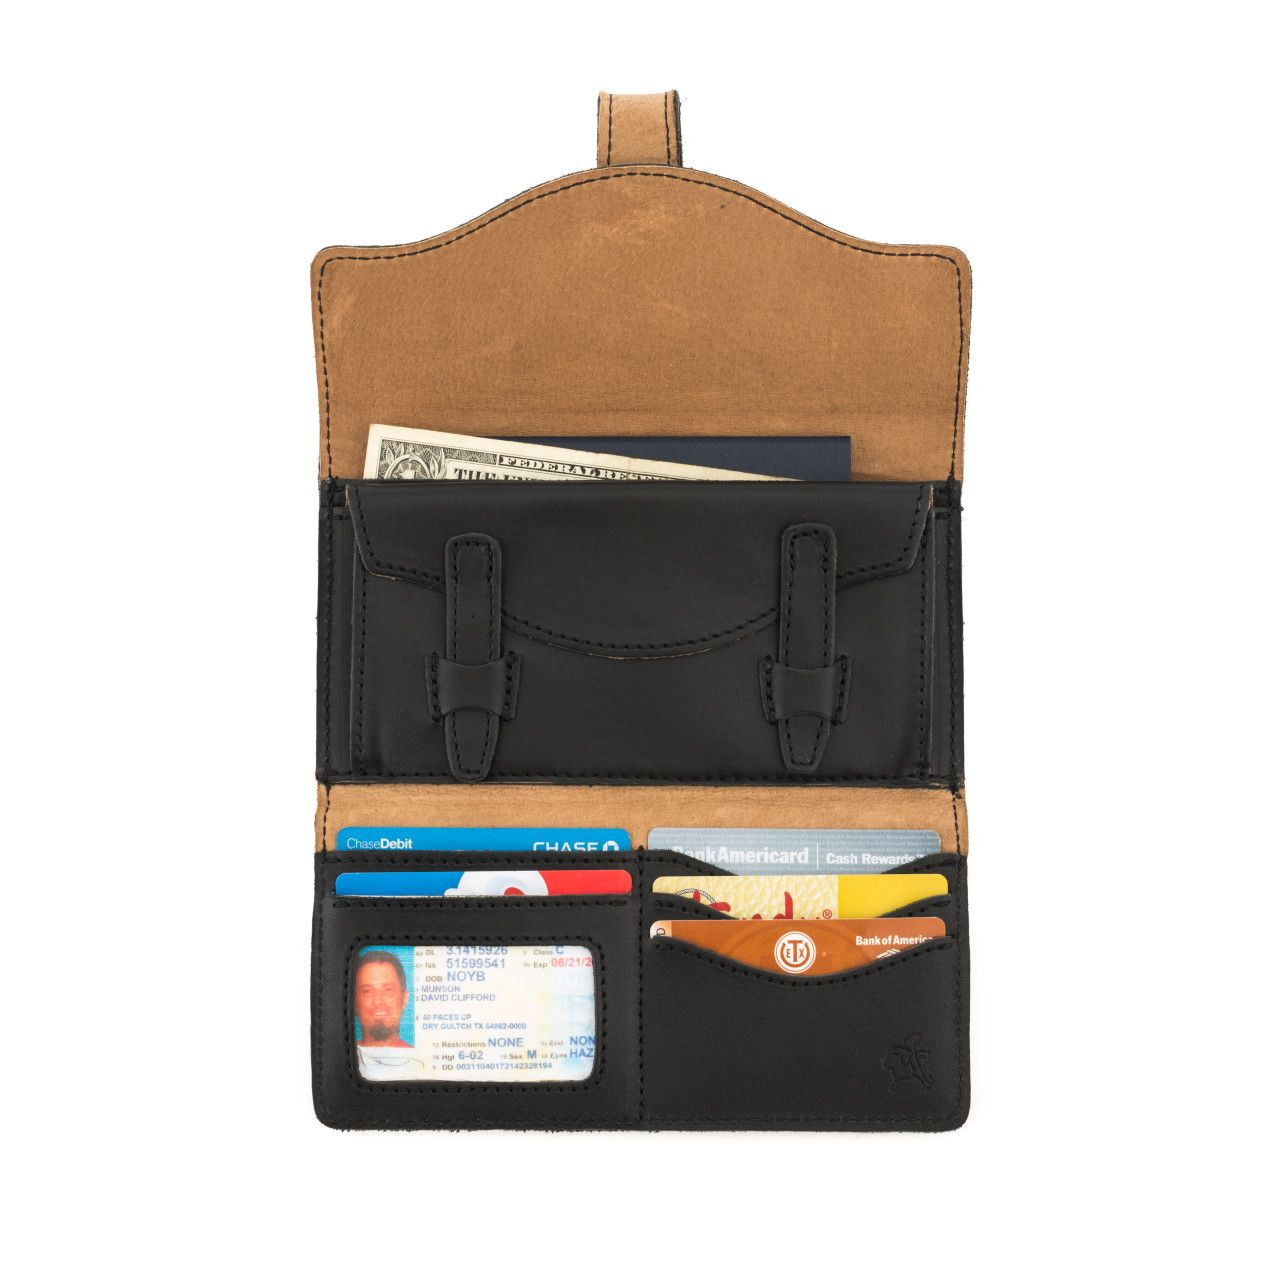 long trifold leather wallet in black leather with full content: money, passport, card, driver's license